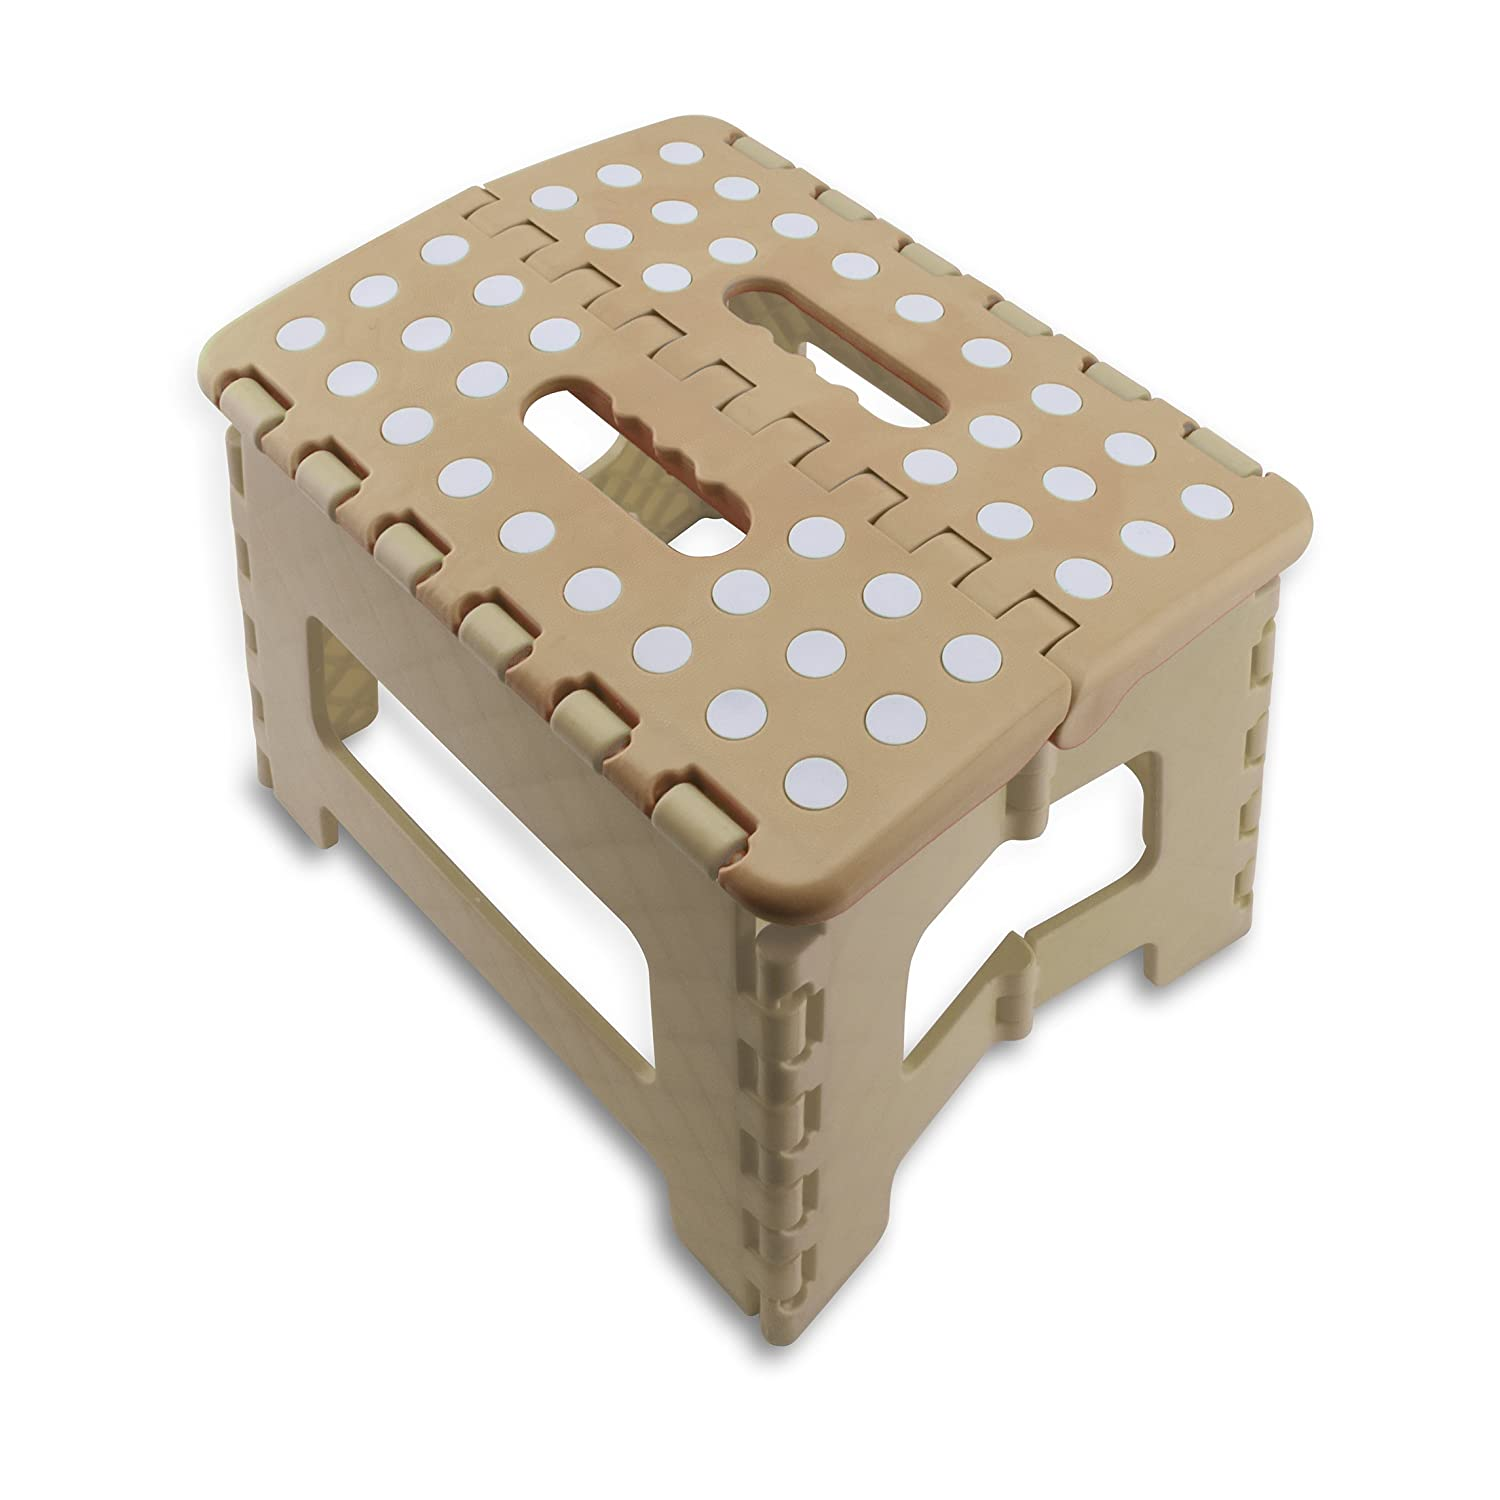 ecHome One Step Folding Plastic Stool Non-Slip Collapsible Portable w/Handle for Kids Adult